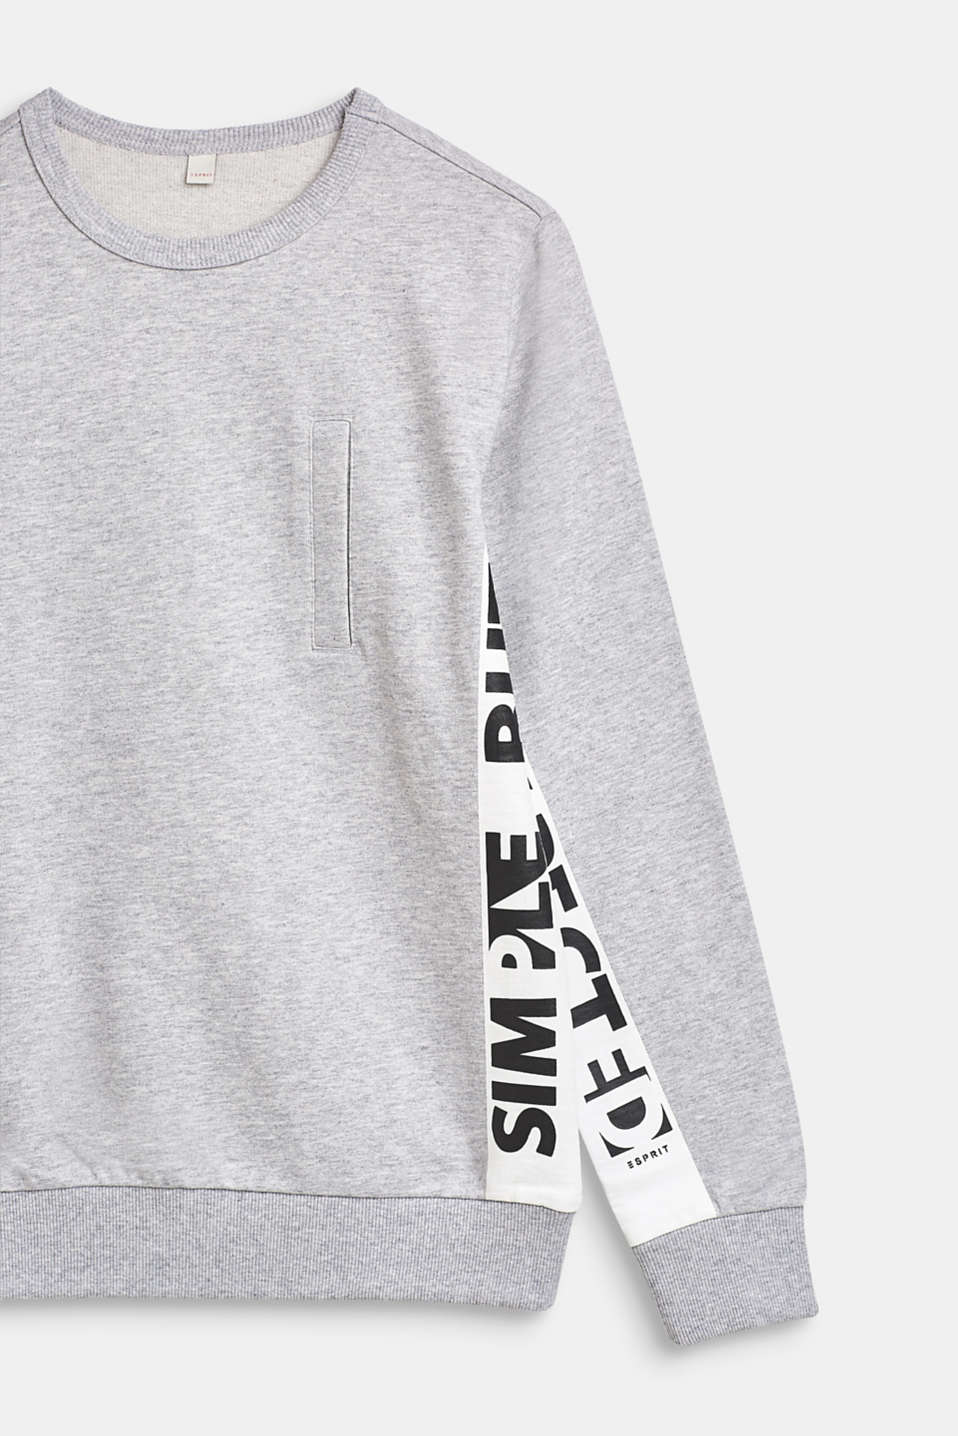 Sweatshirt with printed lettering, 100% cotton, LCHEATHER SILVER, detail image number 3